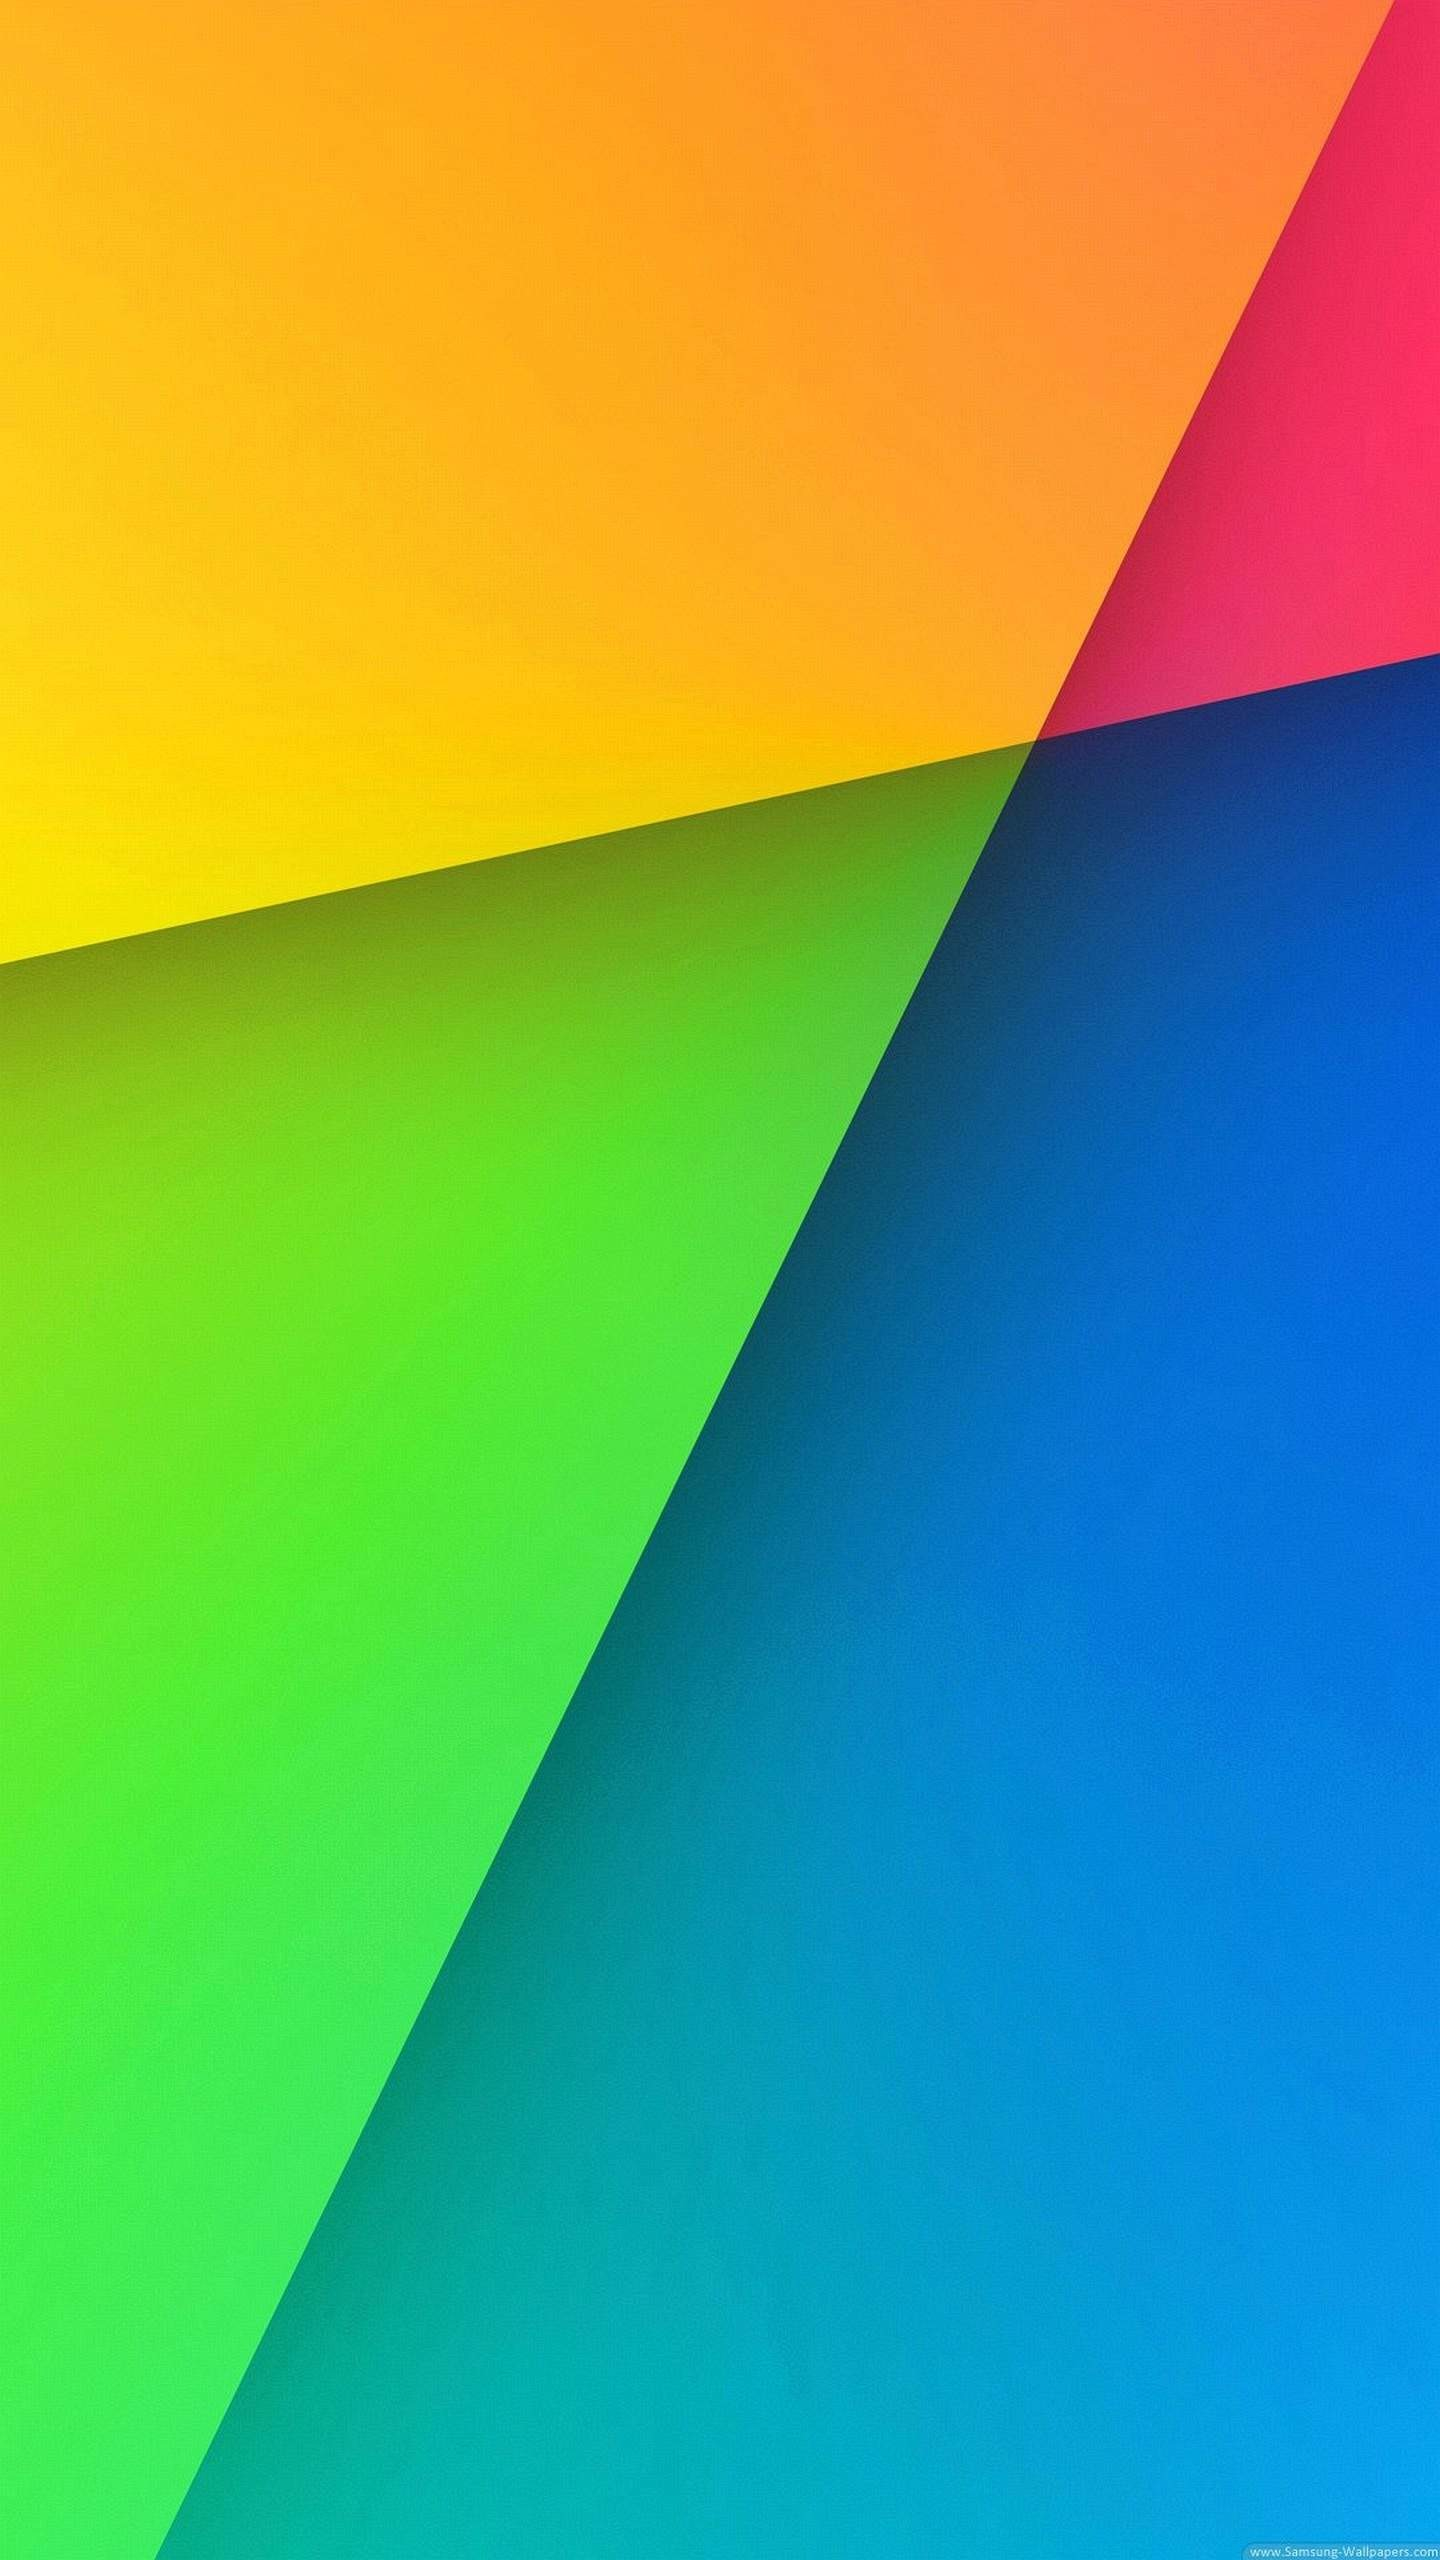 Colorful Mobile Phone Wallpapers HD Phone Wallpapers